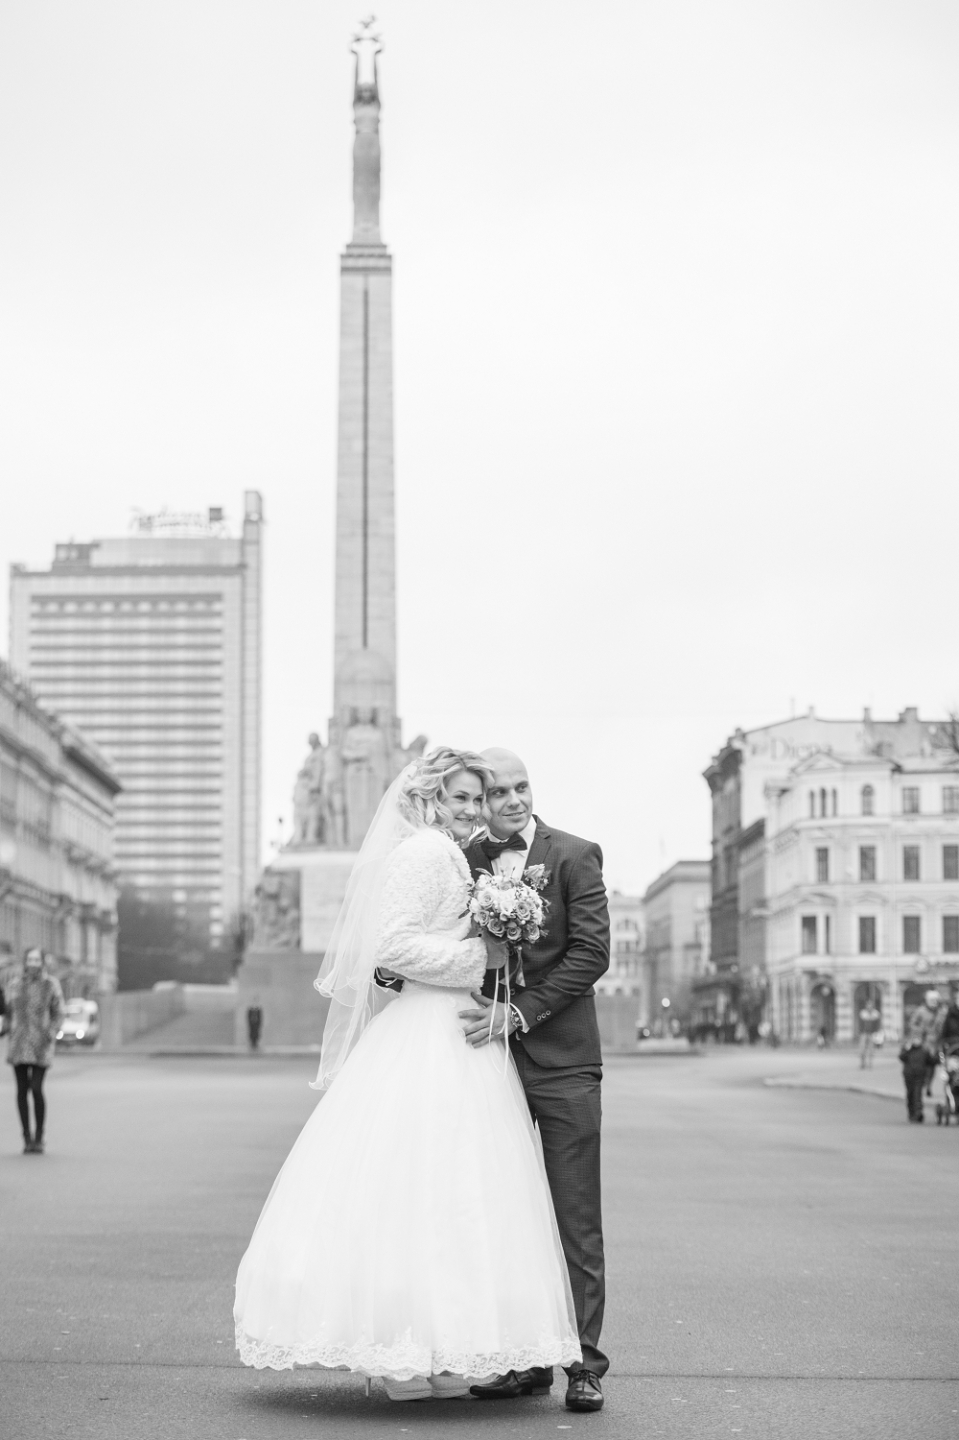 sized_haraldsfilipovs_Weddings186